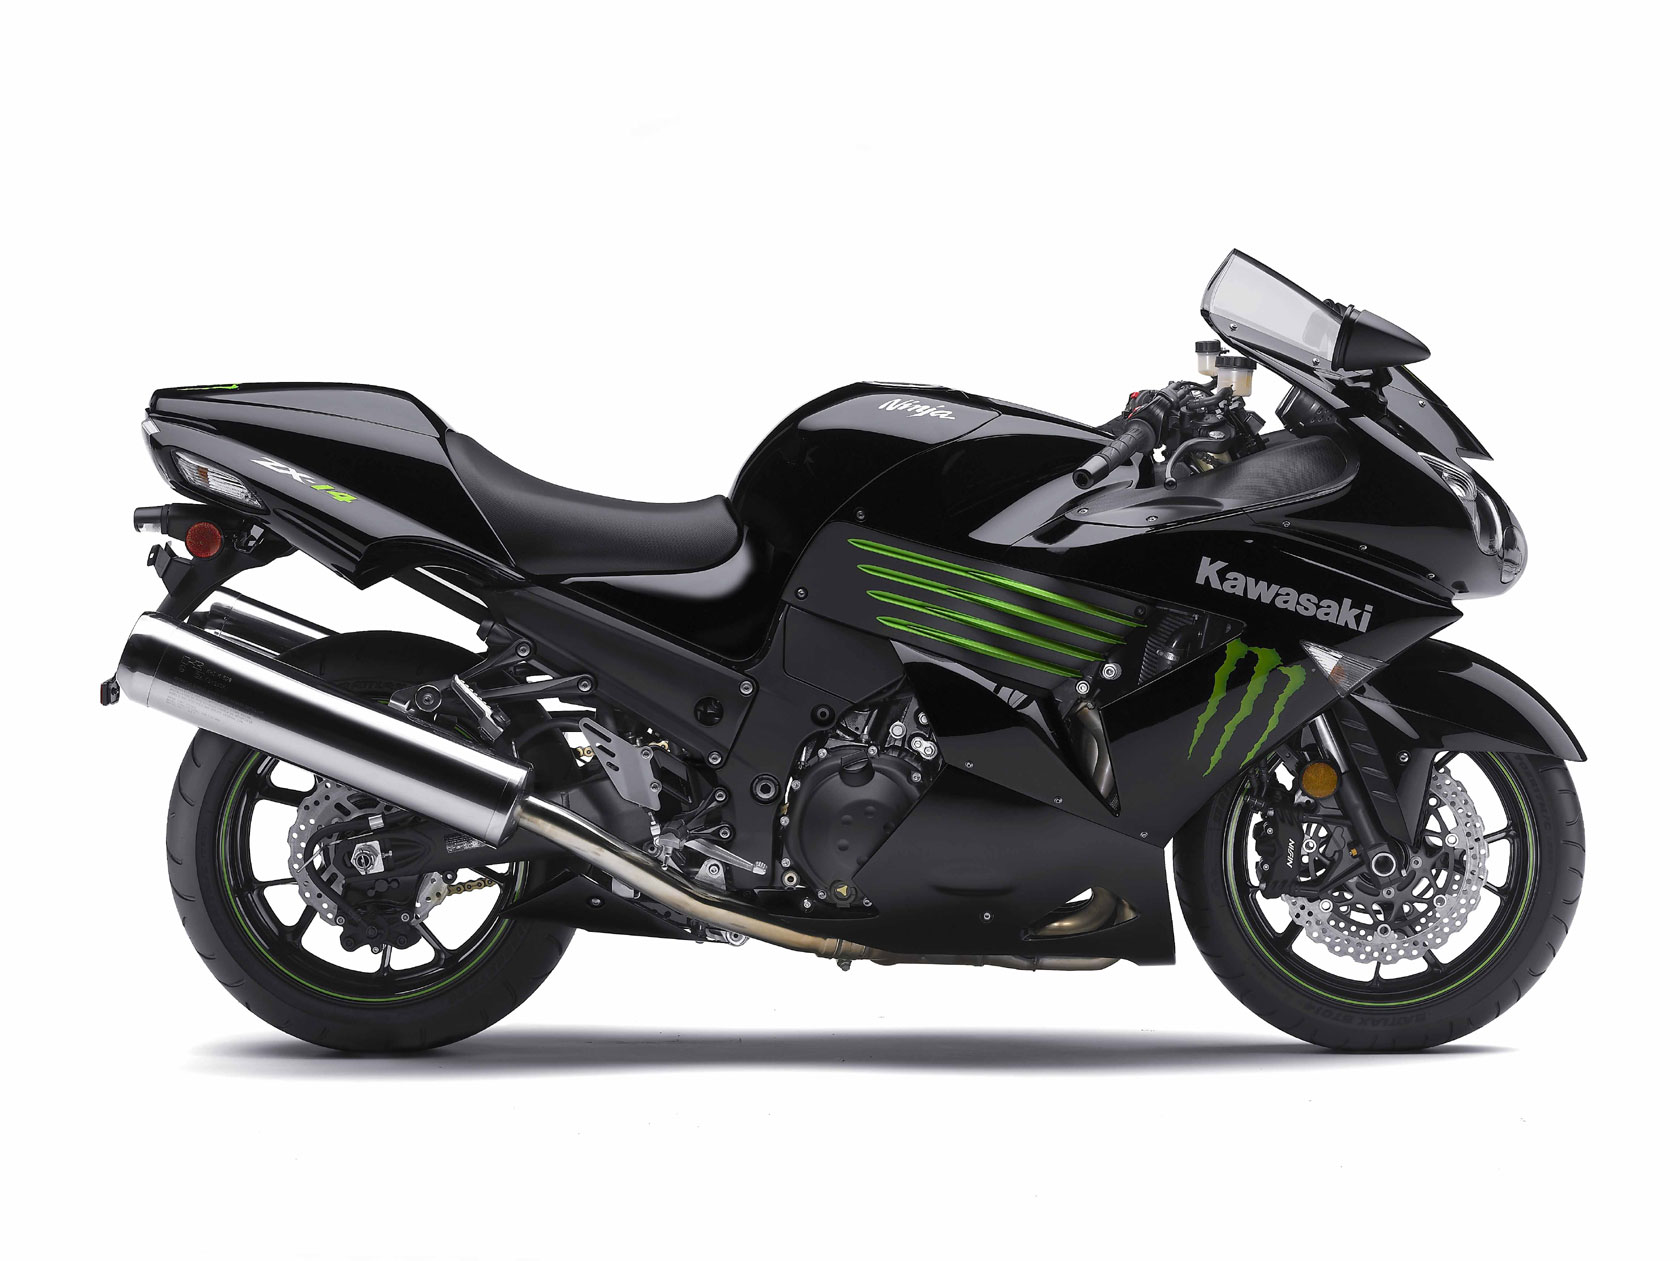 Kawasaki monster photo - 1